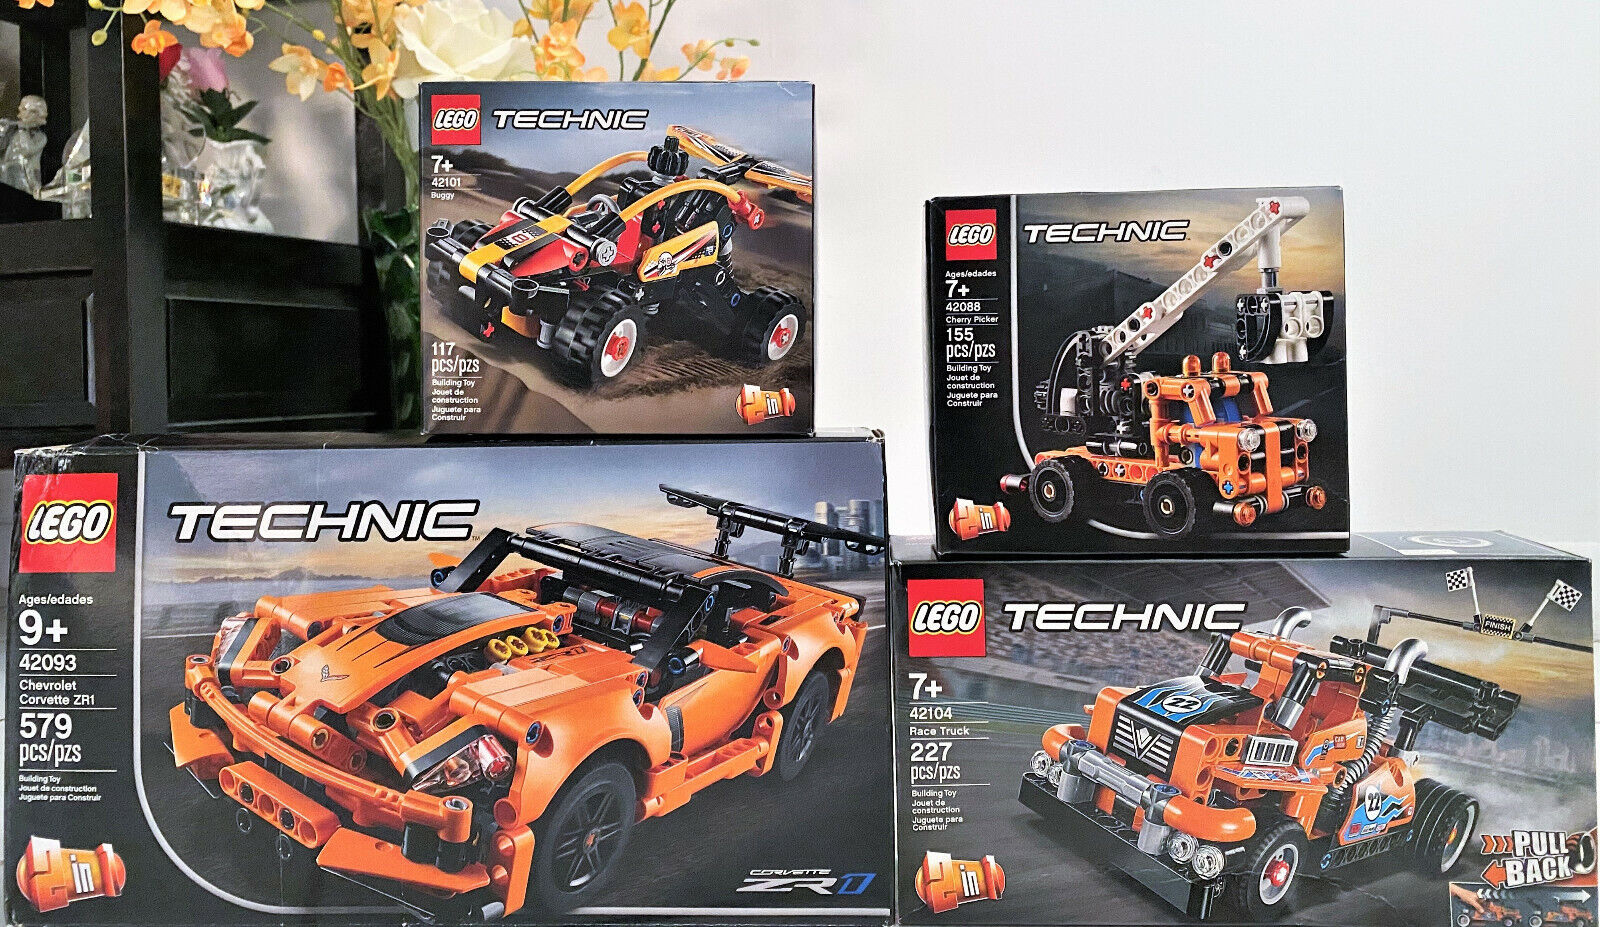 Lego Technic Race Truck Two Sets Combined Into One 42026 And 42027